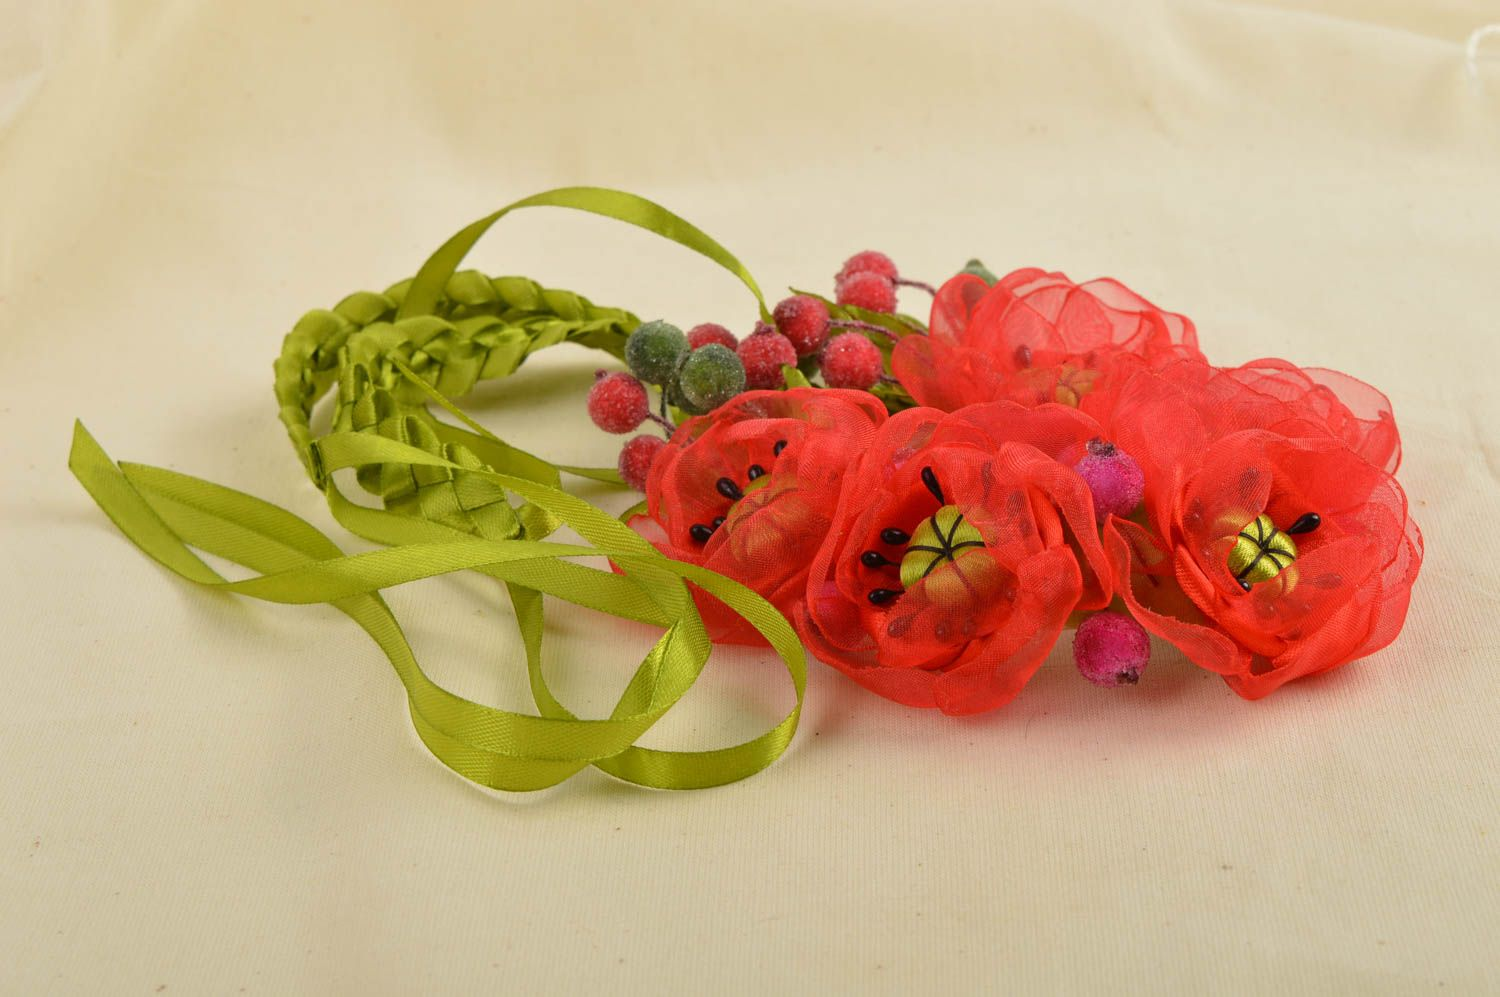 Unusual handmade textile necklace costume jewelry fashion accessories gift ideas photo 1